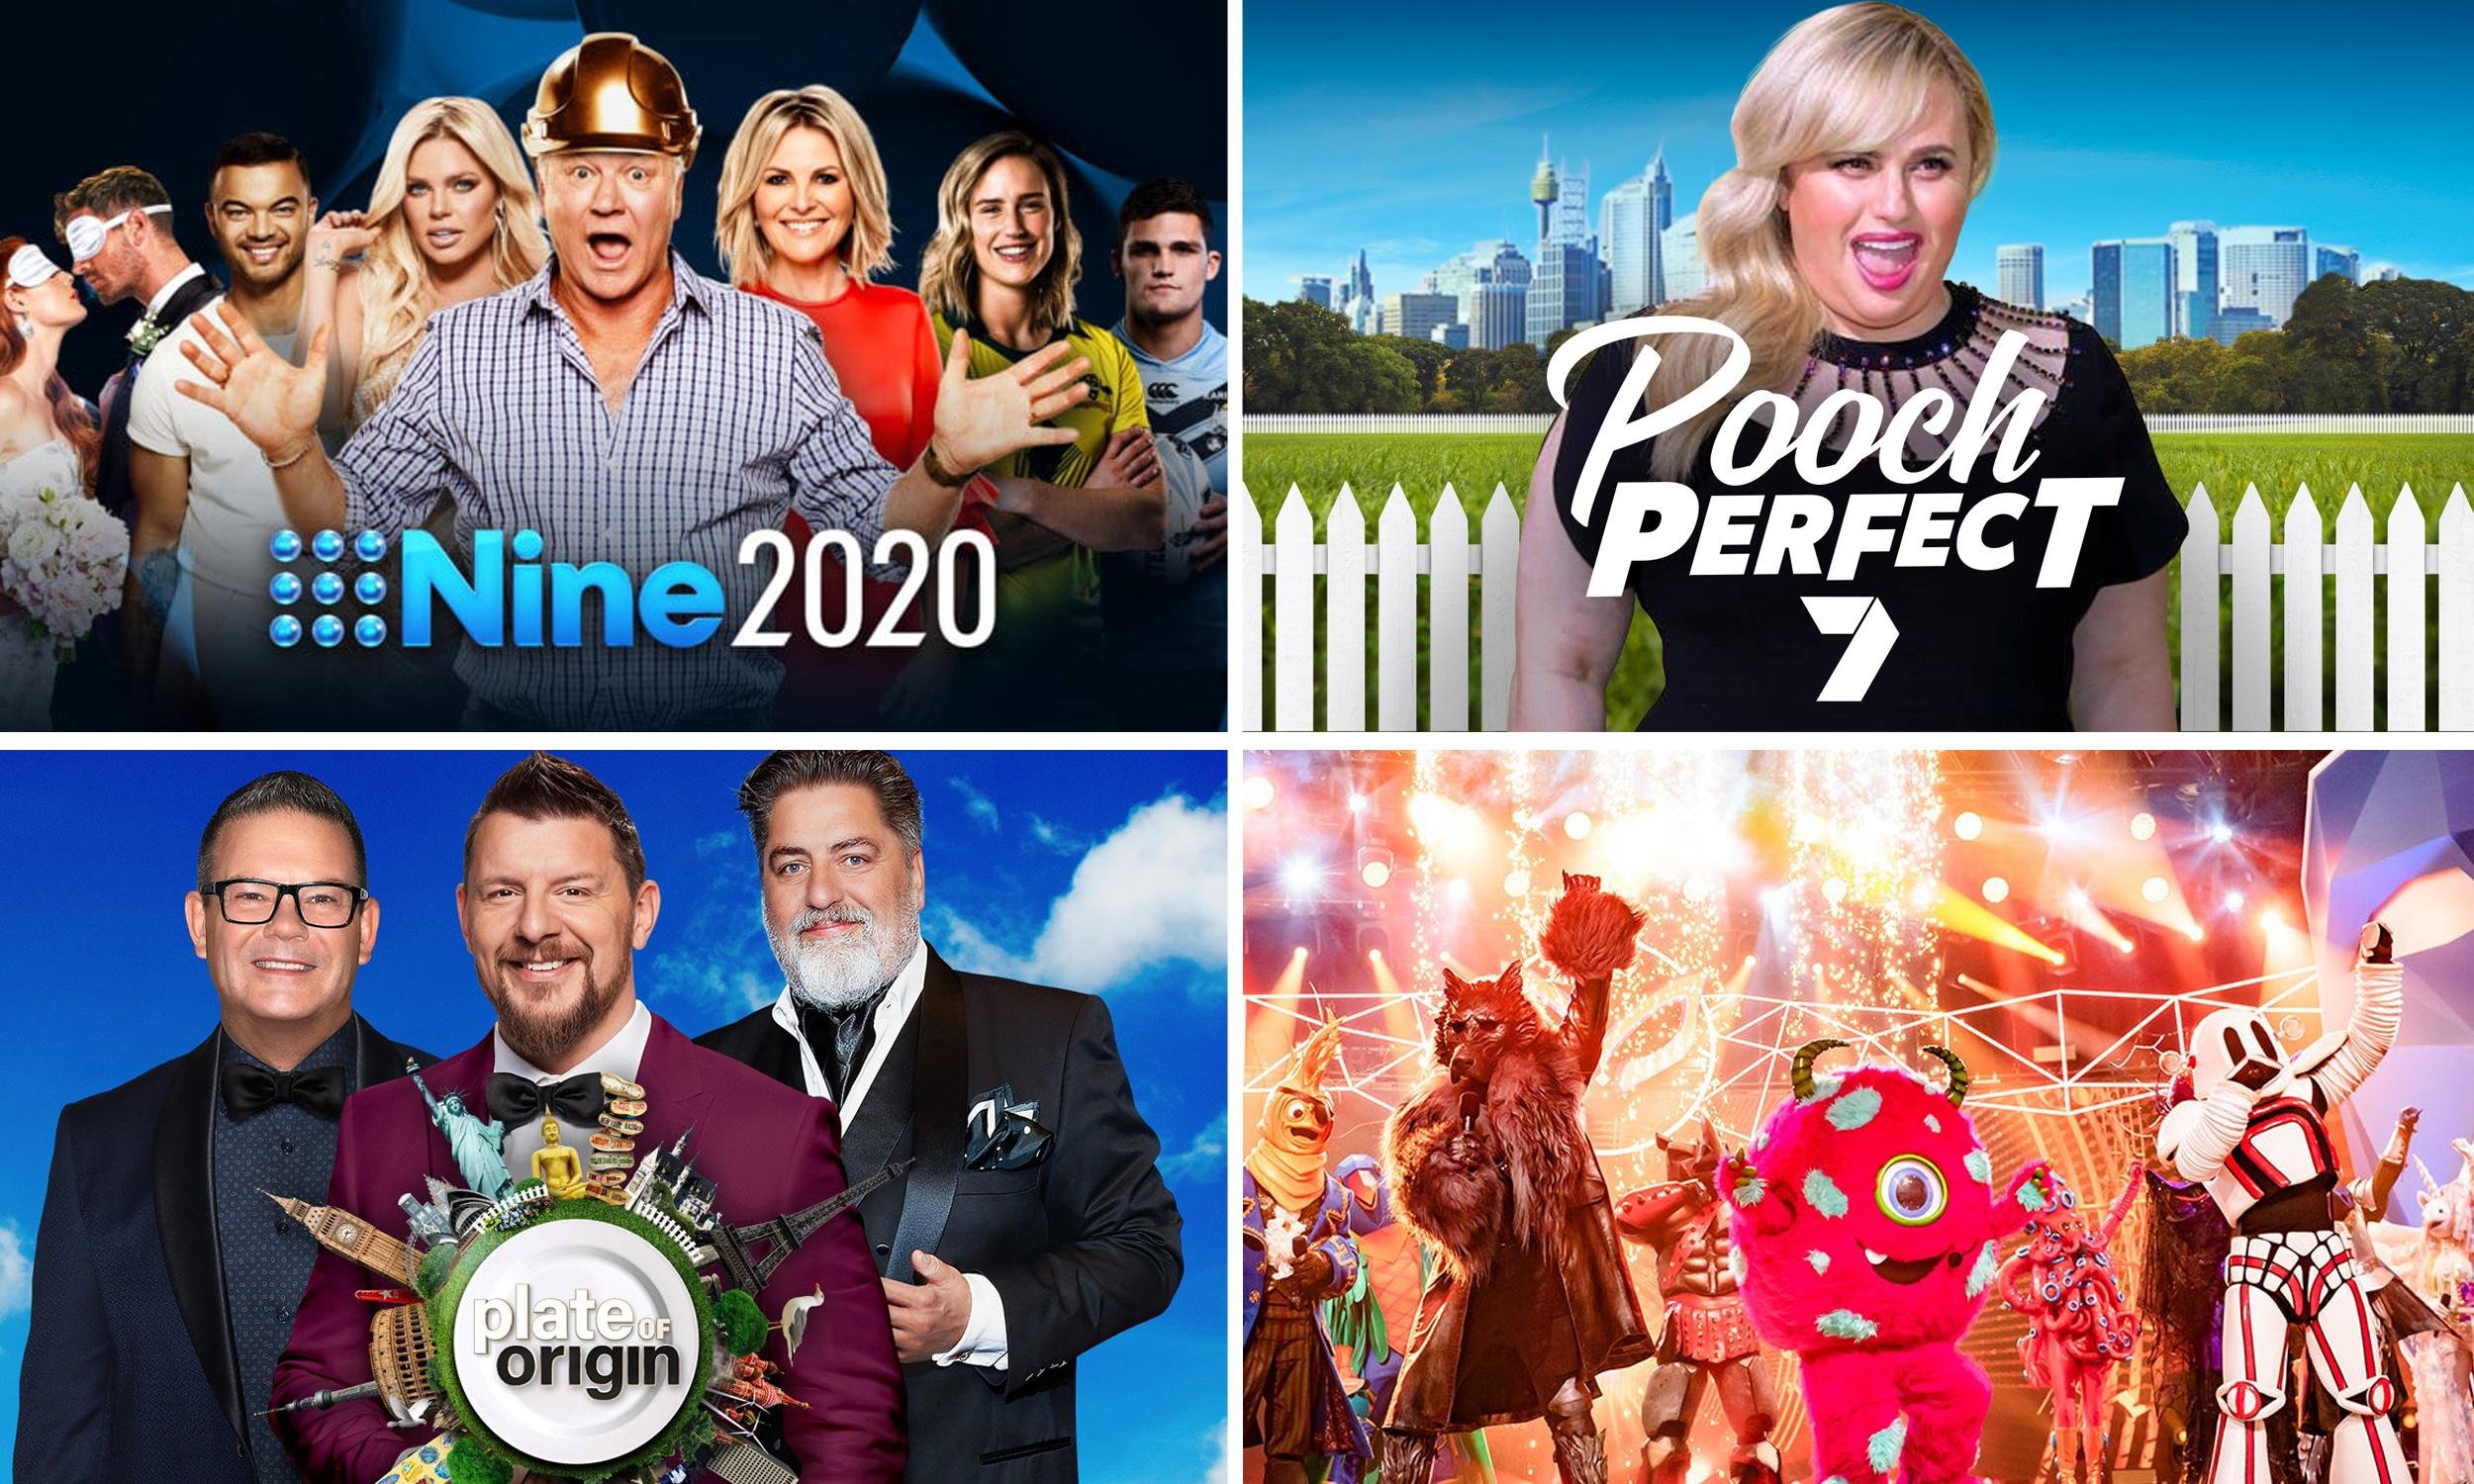 Reheated cooking and 'horny reality': the major networks have jumped the shark